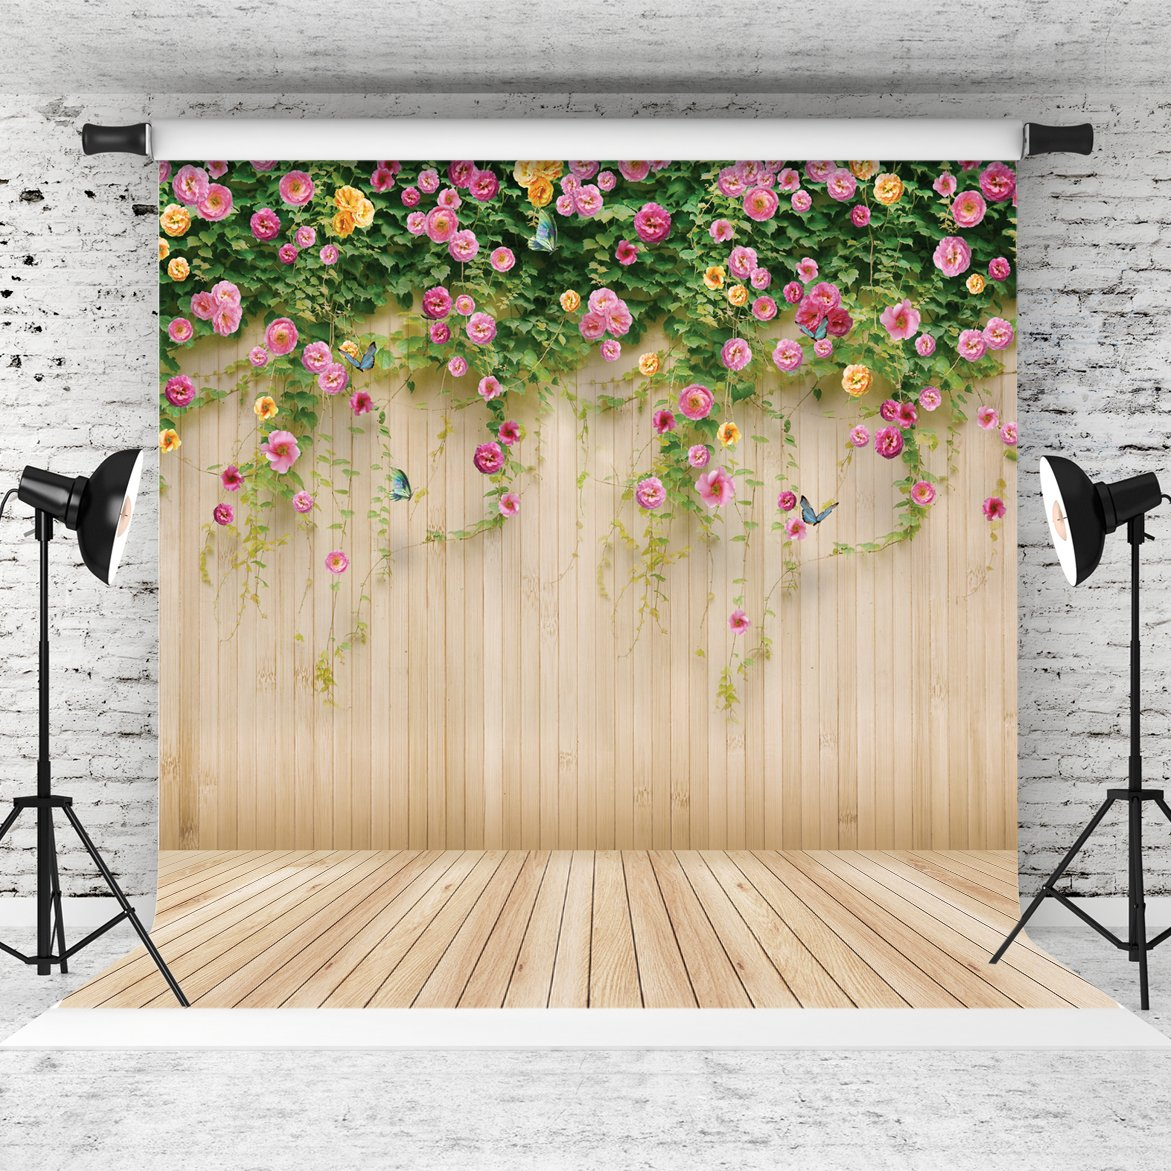 WOLADA 10x10ft Spring Backdrop Flower Wood Photography Backdrop Prop for Children Wedding Lover Photo Studio Props 8909